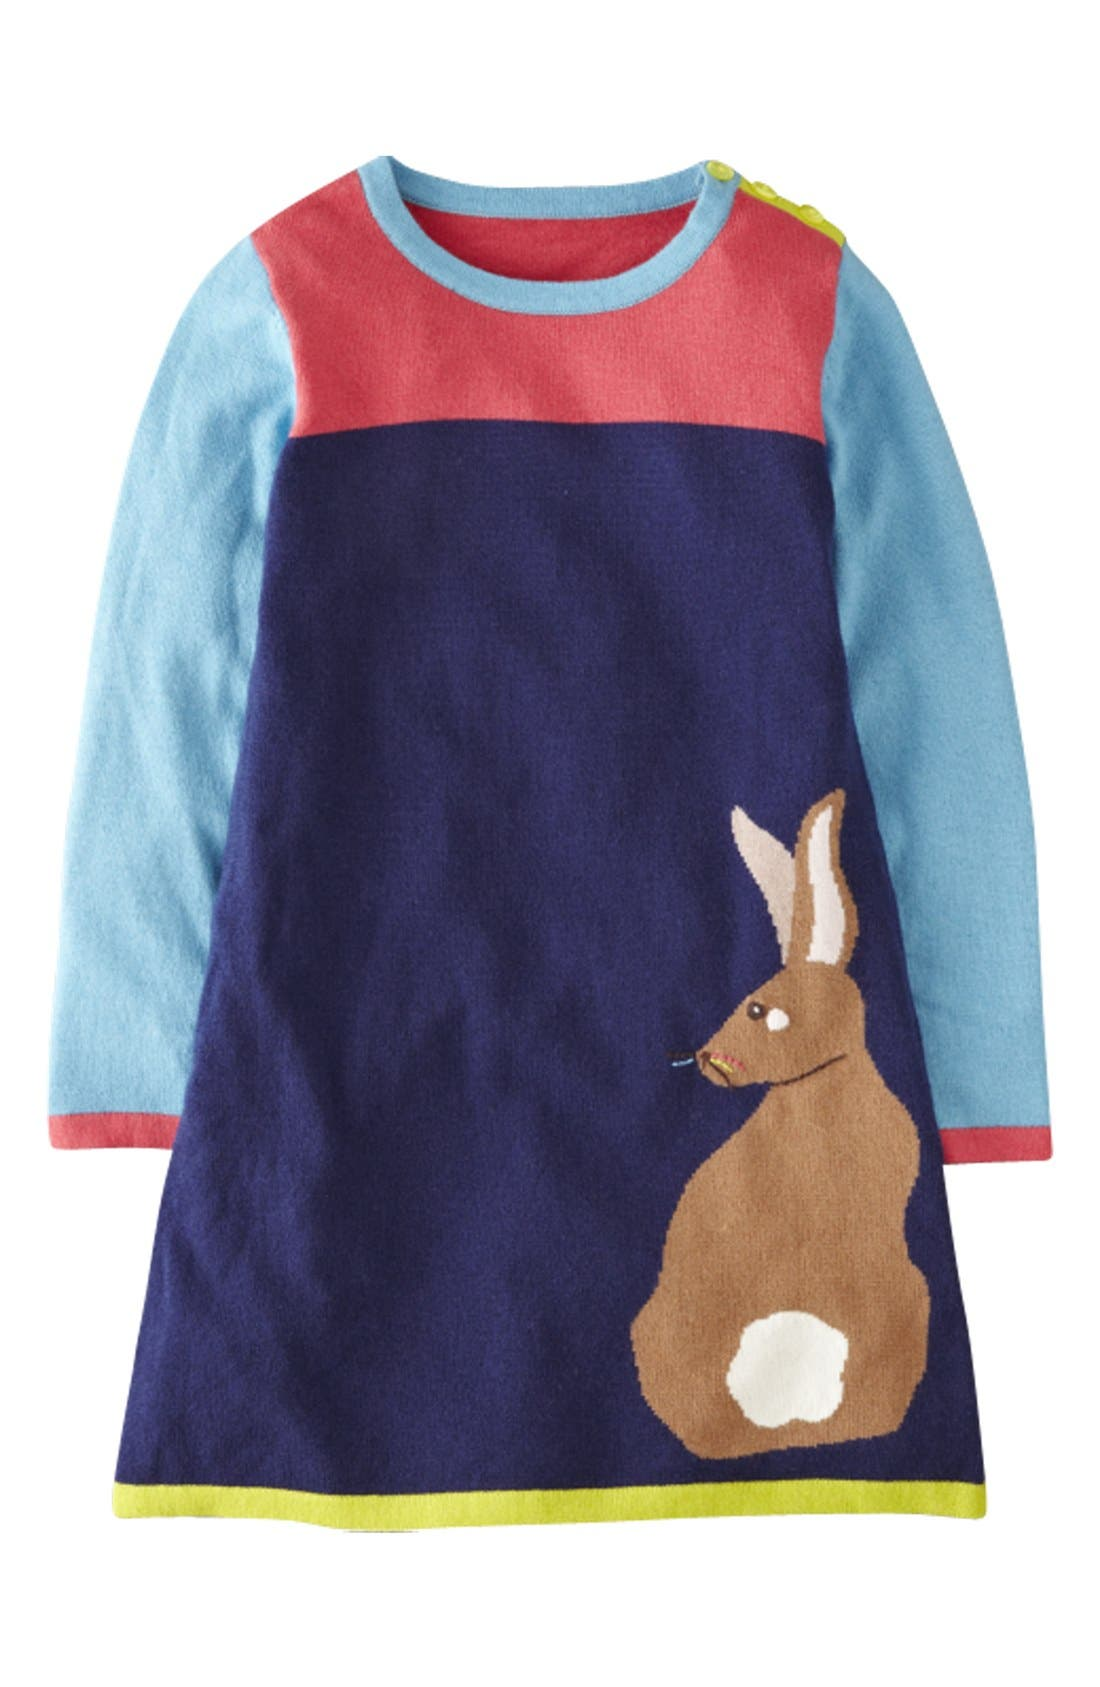 Alternate Image 1 Selected - Mini Boden 'Woodland' Knit Dress (Toddler Girls)